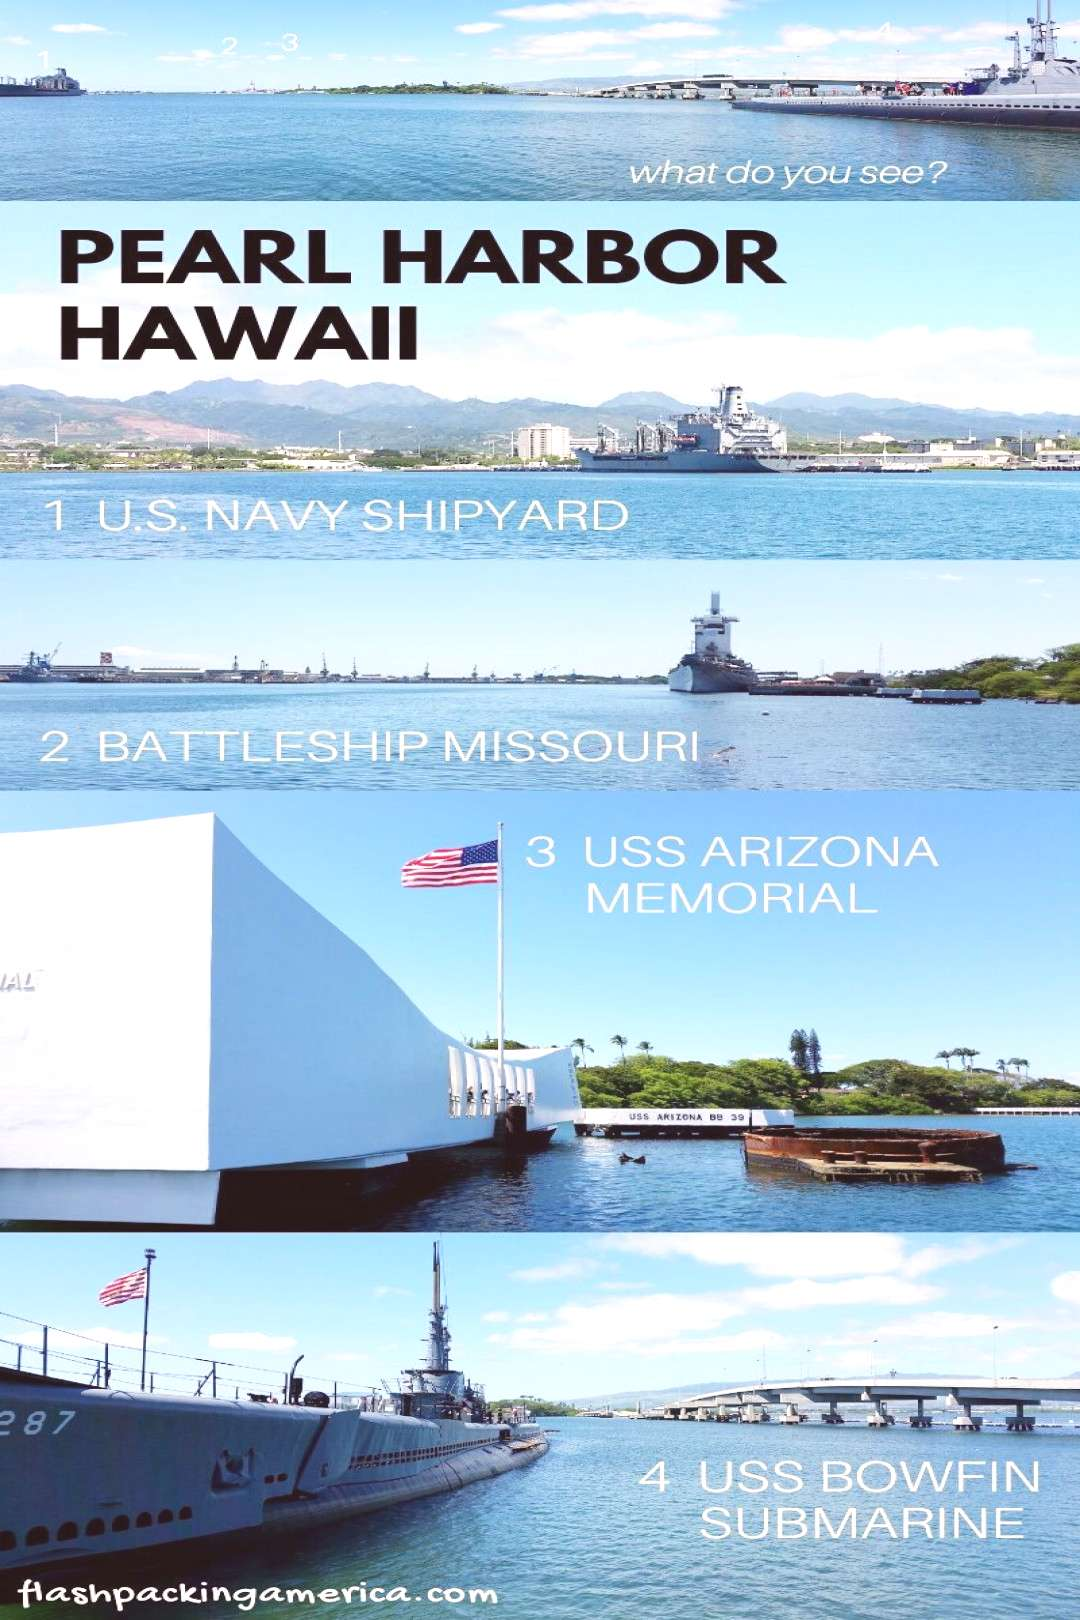 Hawaii travel tips for pearl harbor memorial on Oahu Hawaii. Can you visit Pearl Harbor without a t